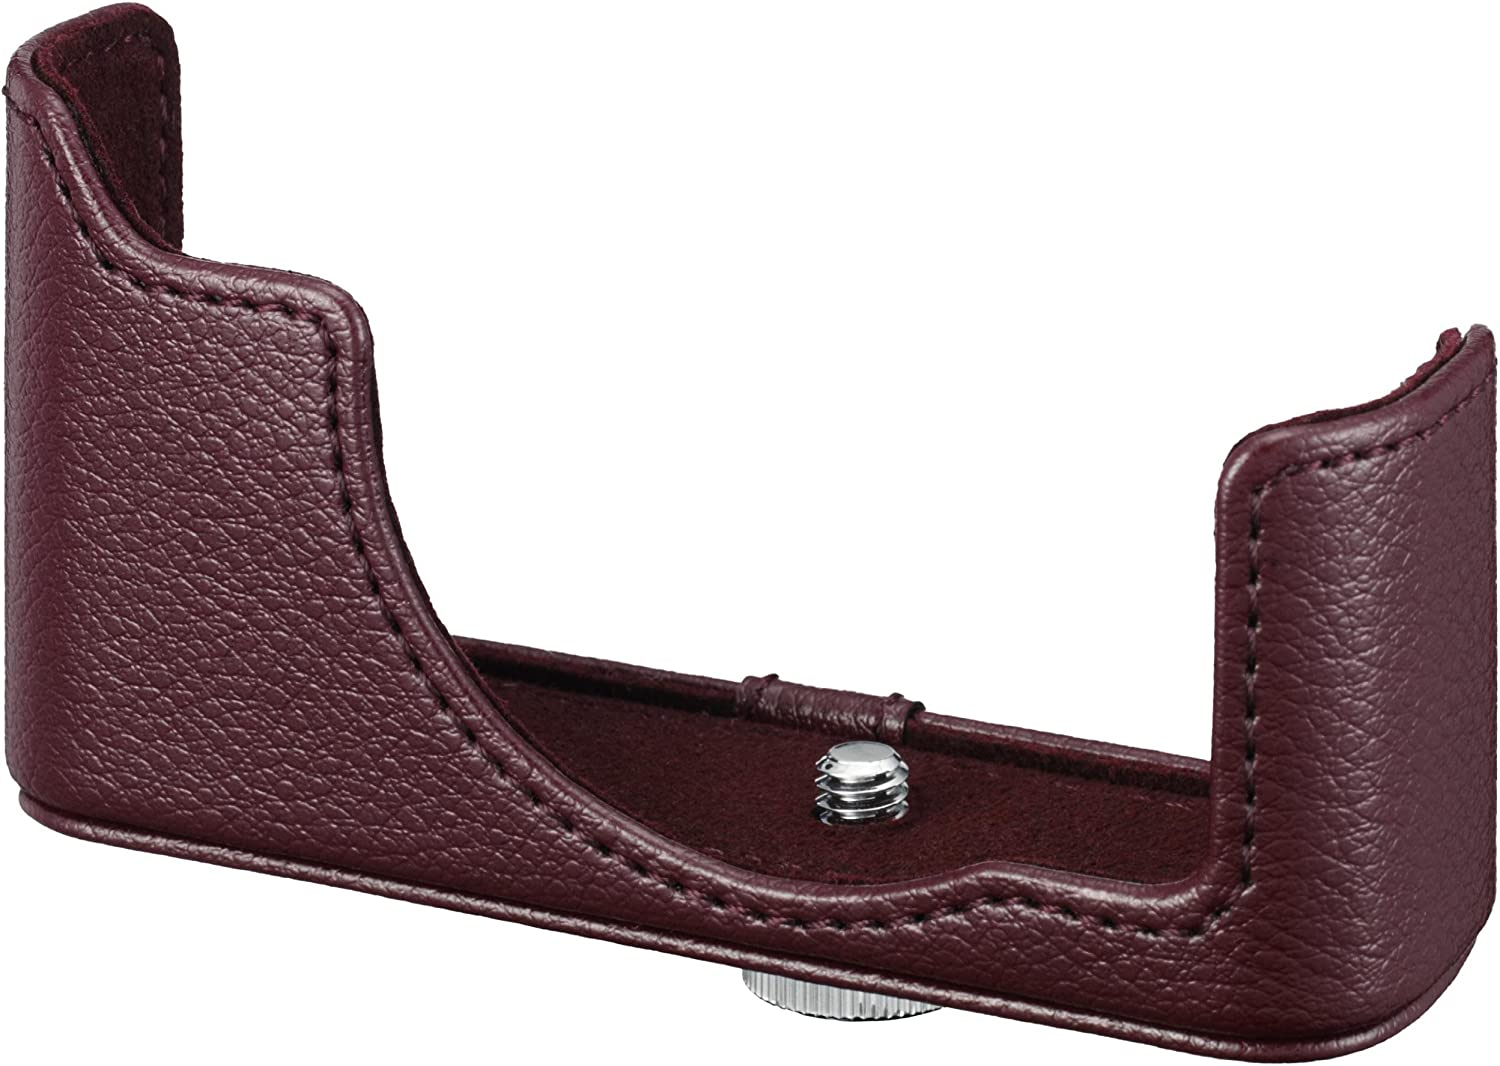 Nikon Nippon regular agency CB-N2200 Leather Housing Case for 1 Sys Quality inspection J3 S1 Series